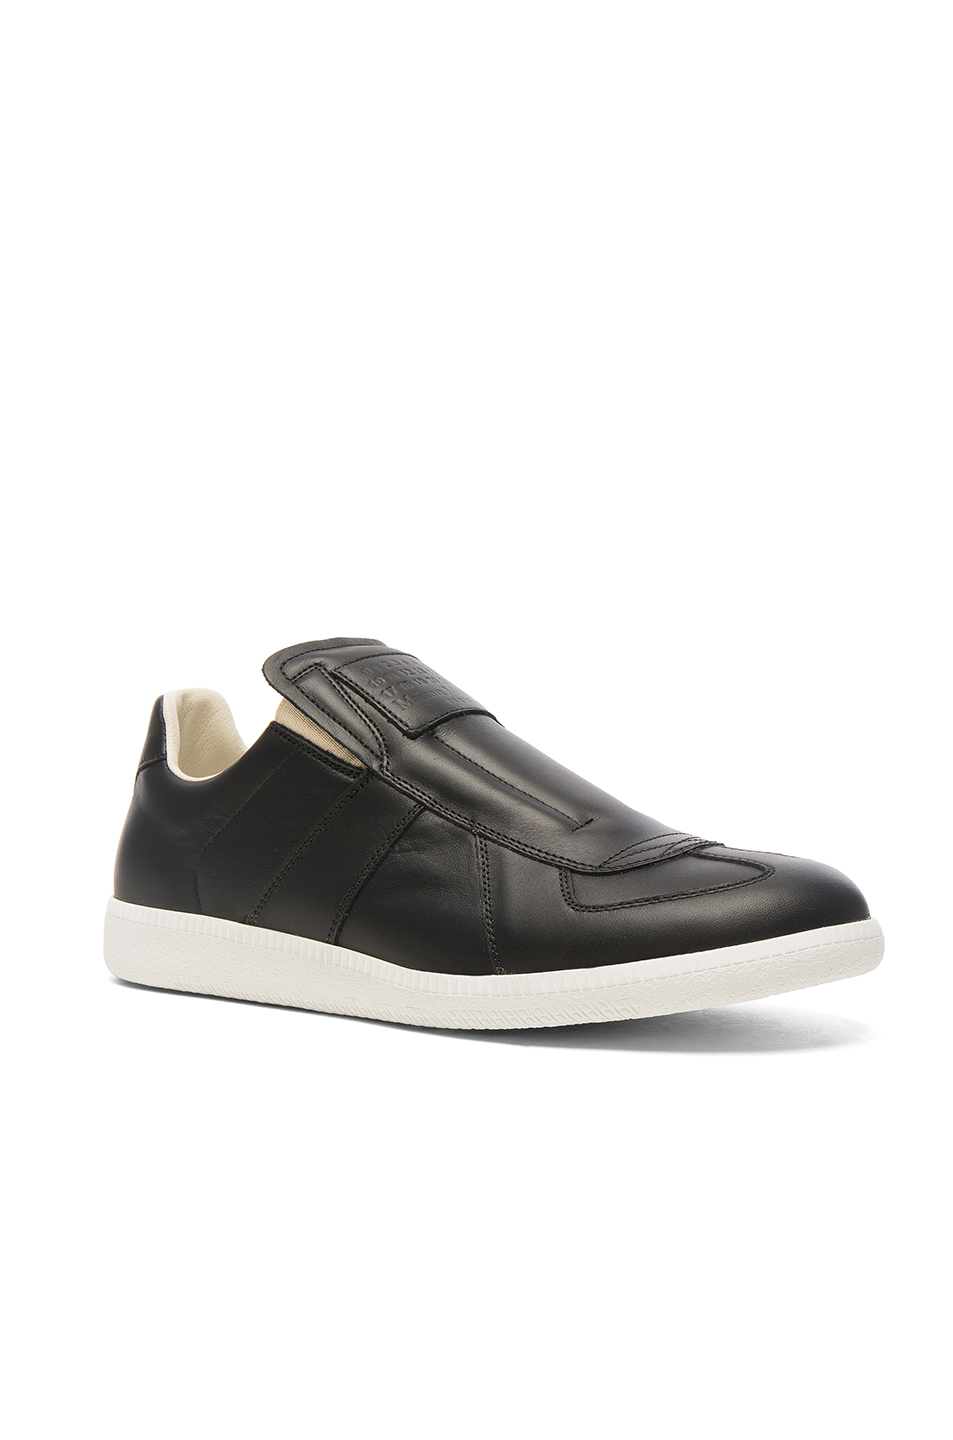 Maison Margiela Calfskin Replica Slip On Leather Sneakers in Black